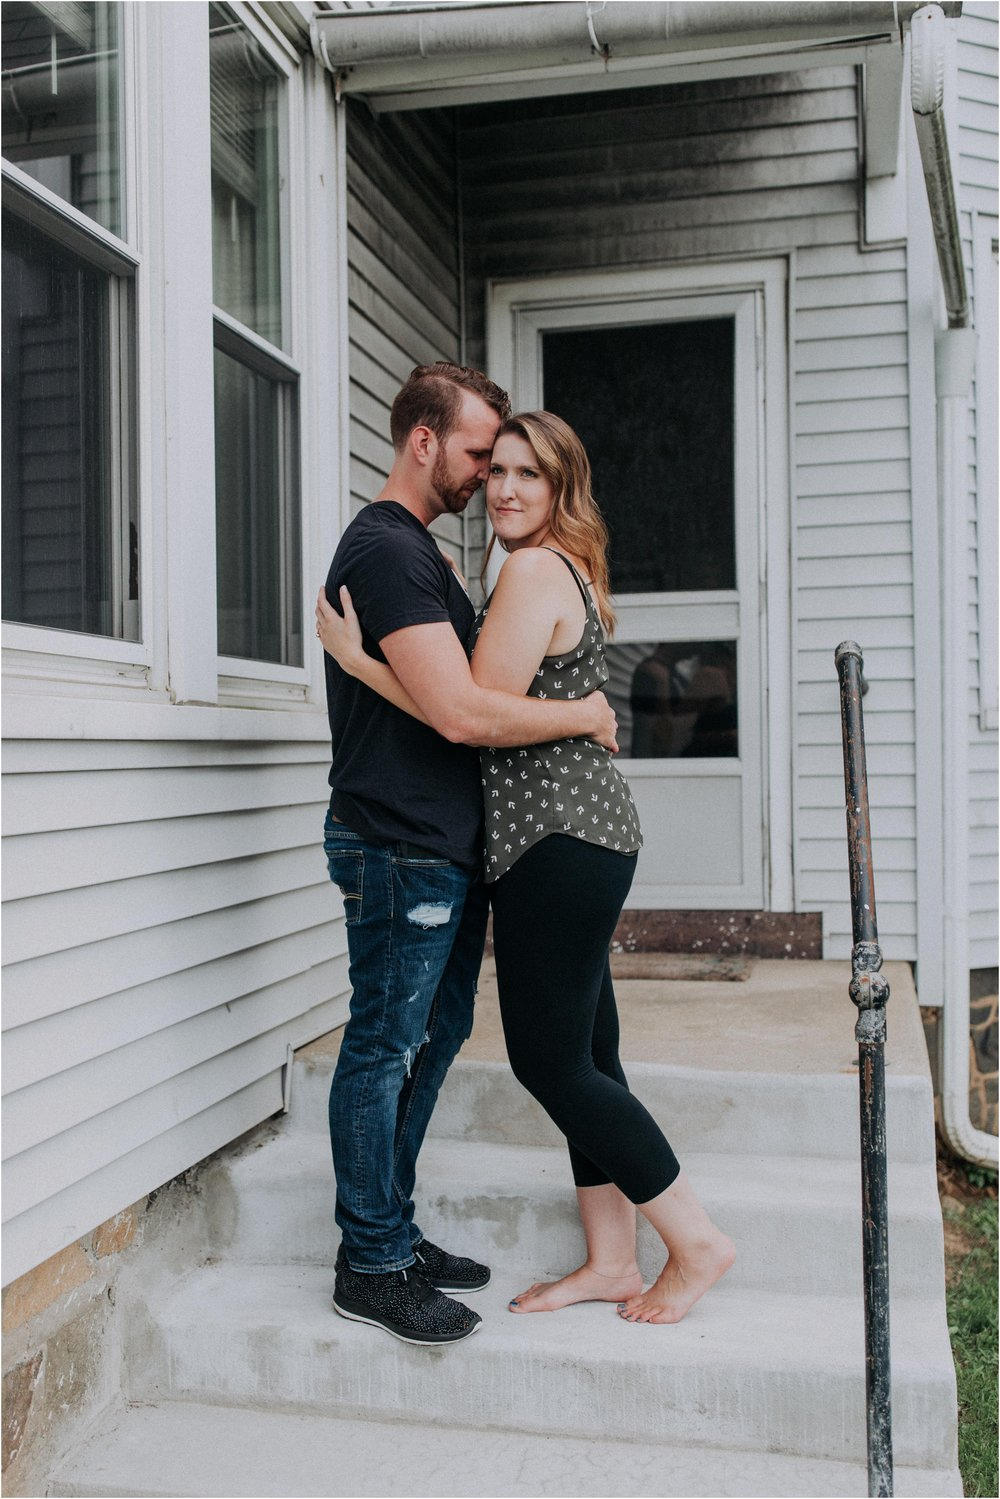 steph-reif-jordan-cox-in-home-lifestyle-engagement-session-hazel-lining-travel-wedding-elopement-photography_0105.jpg